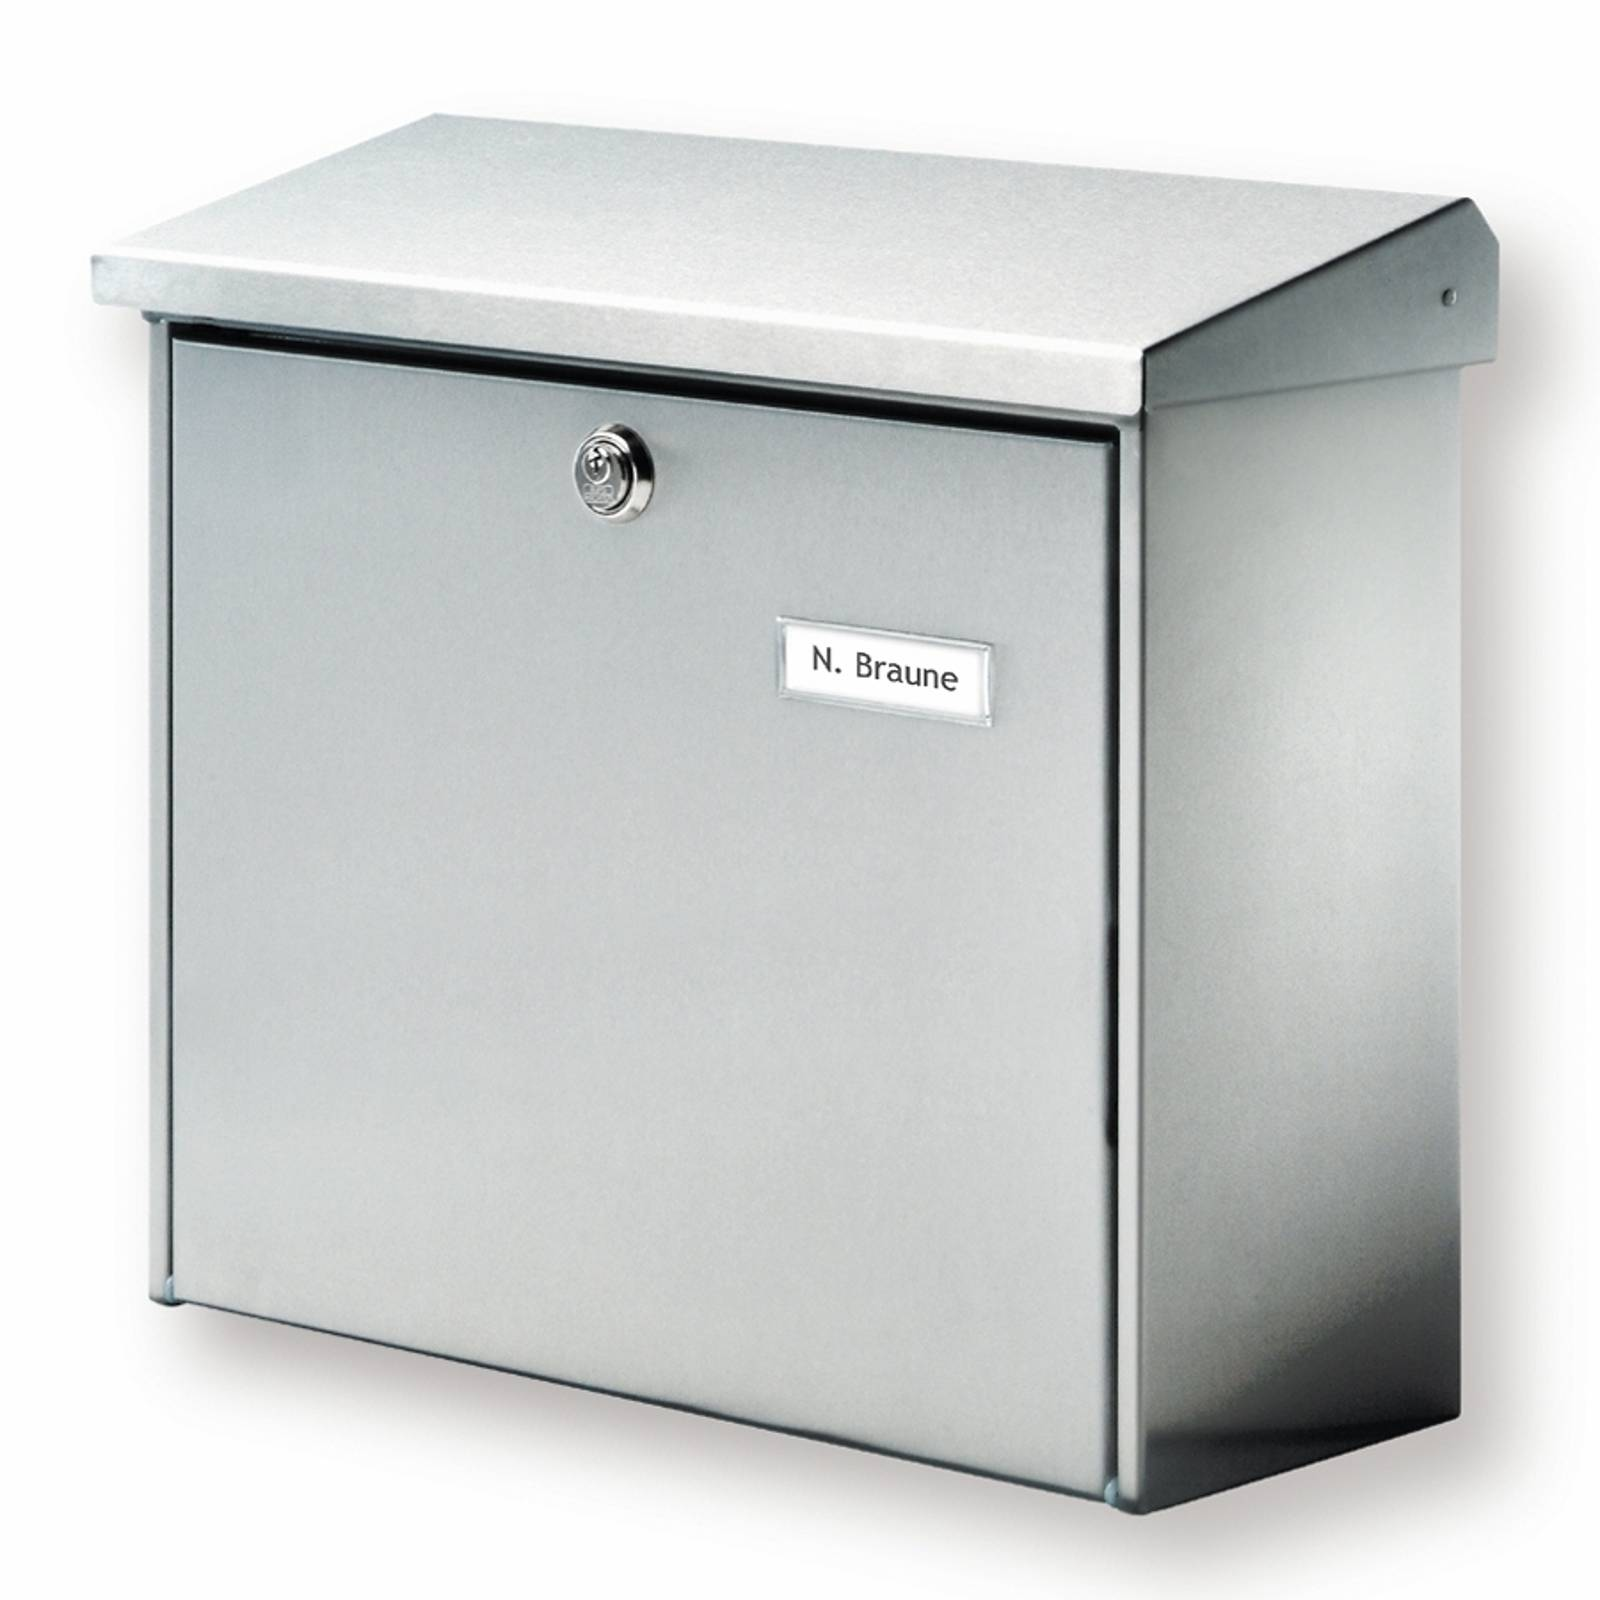 Stainless steel letterbox Comfort